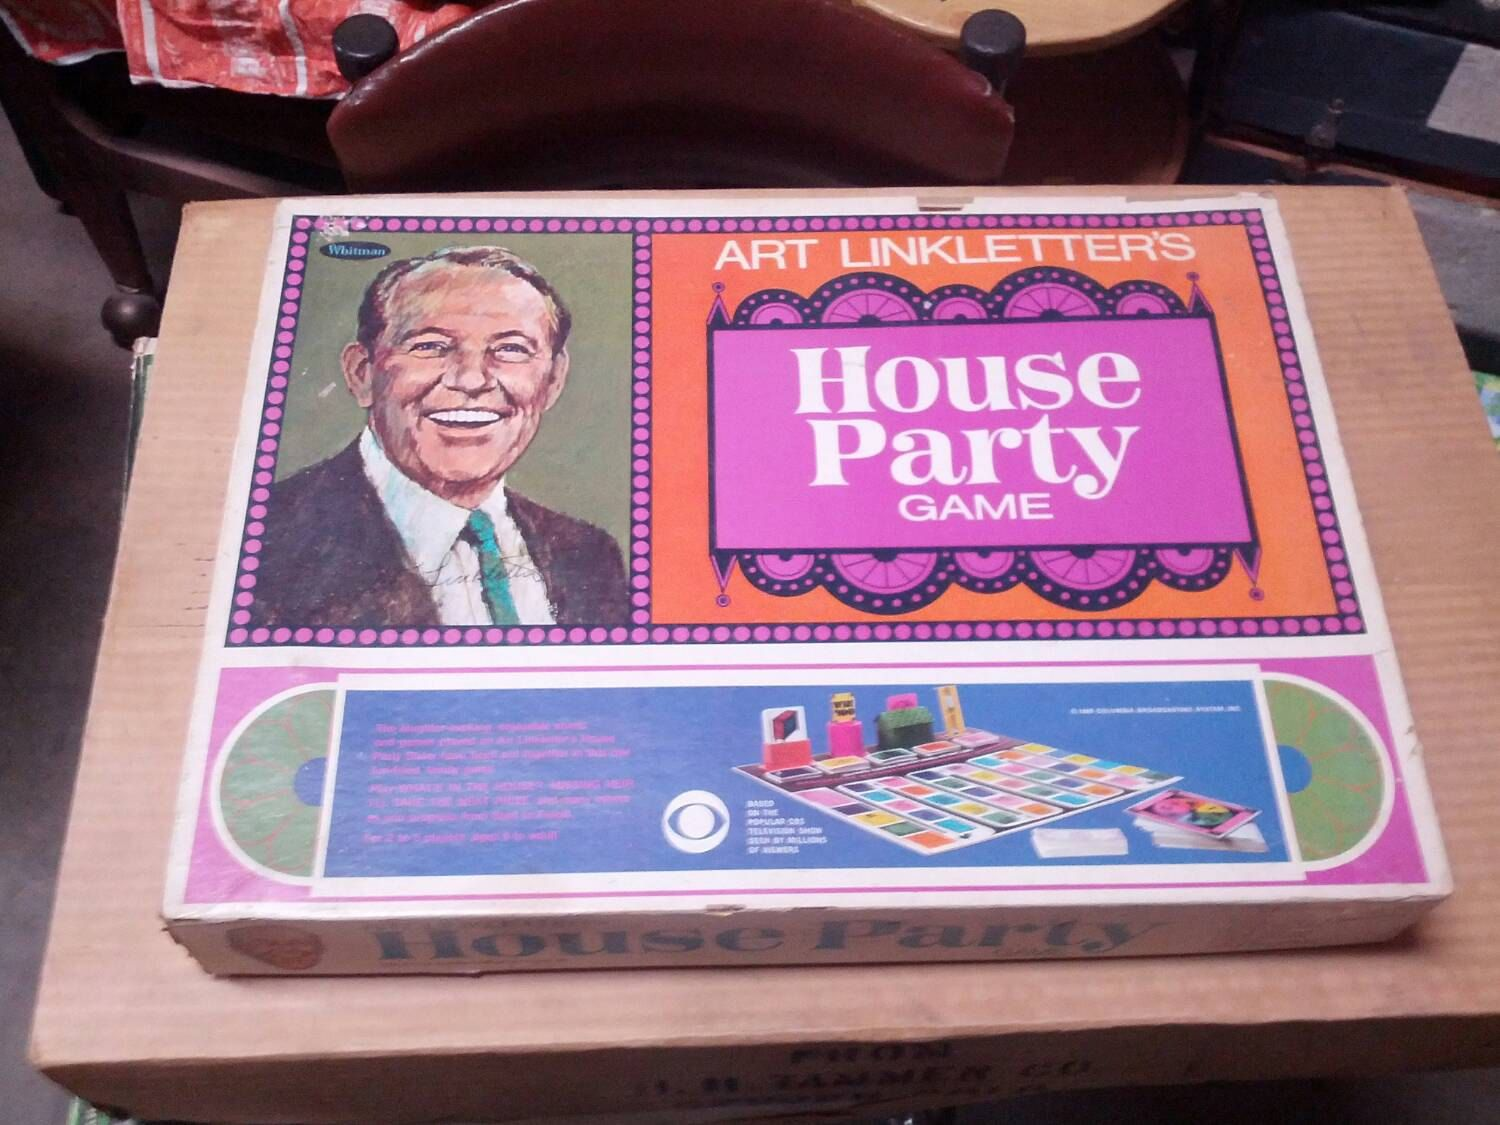 ART LINKLETTER HOUSE PARTY BOARD GAME (1968) By